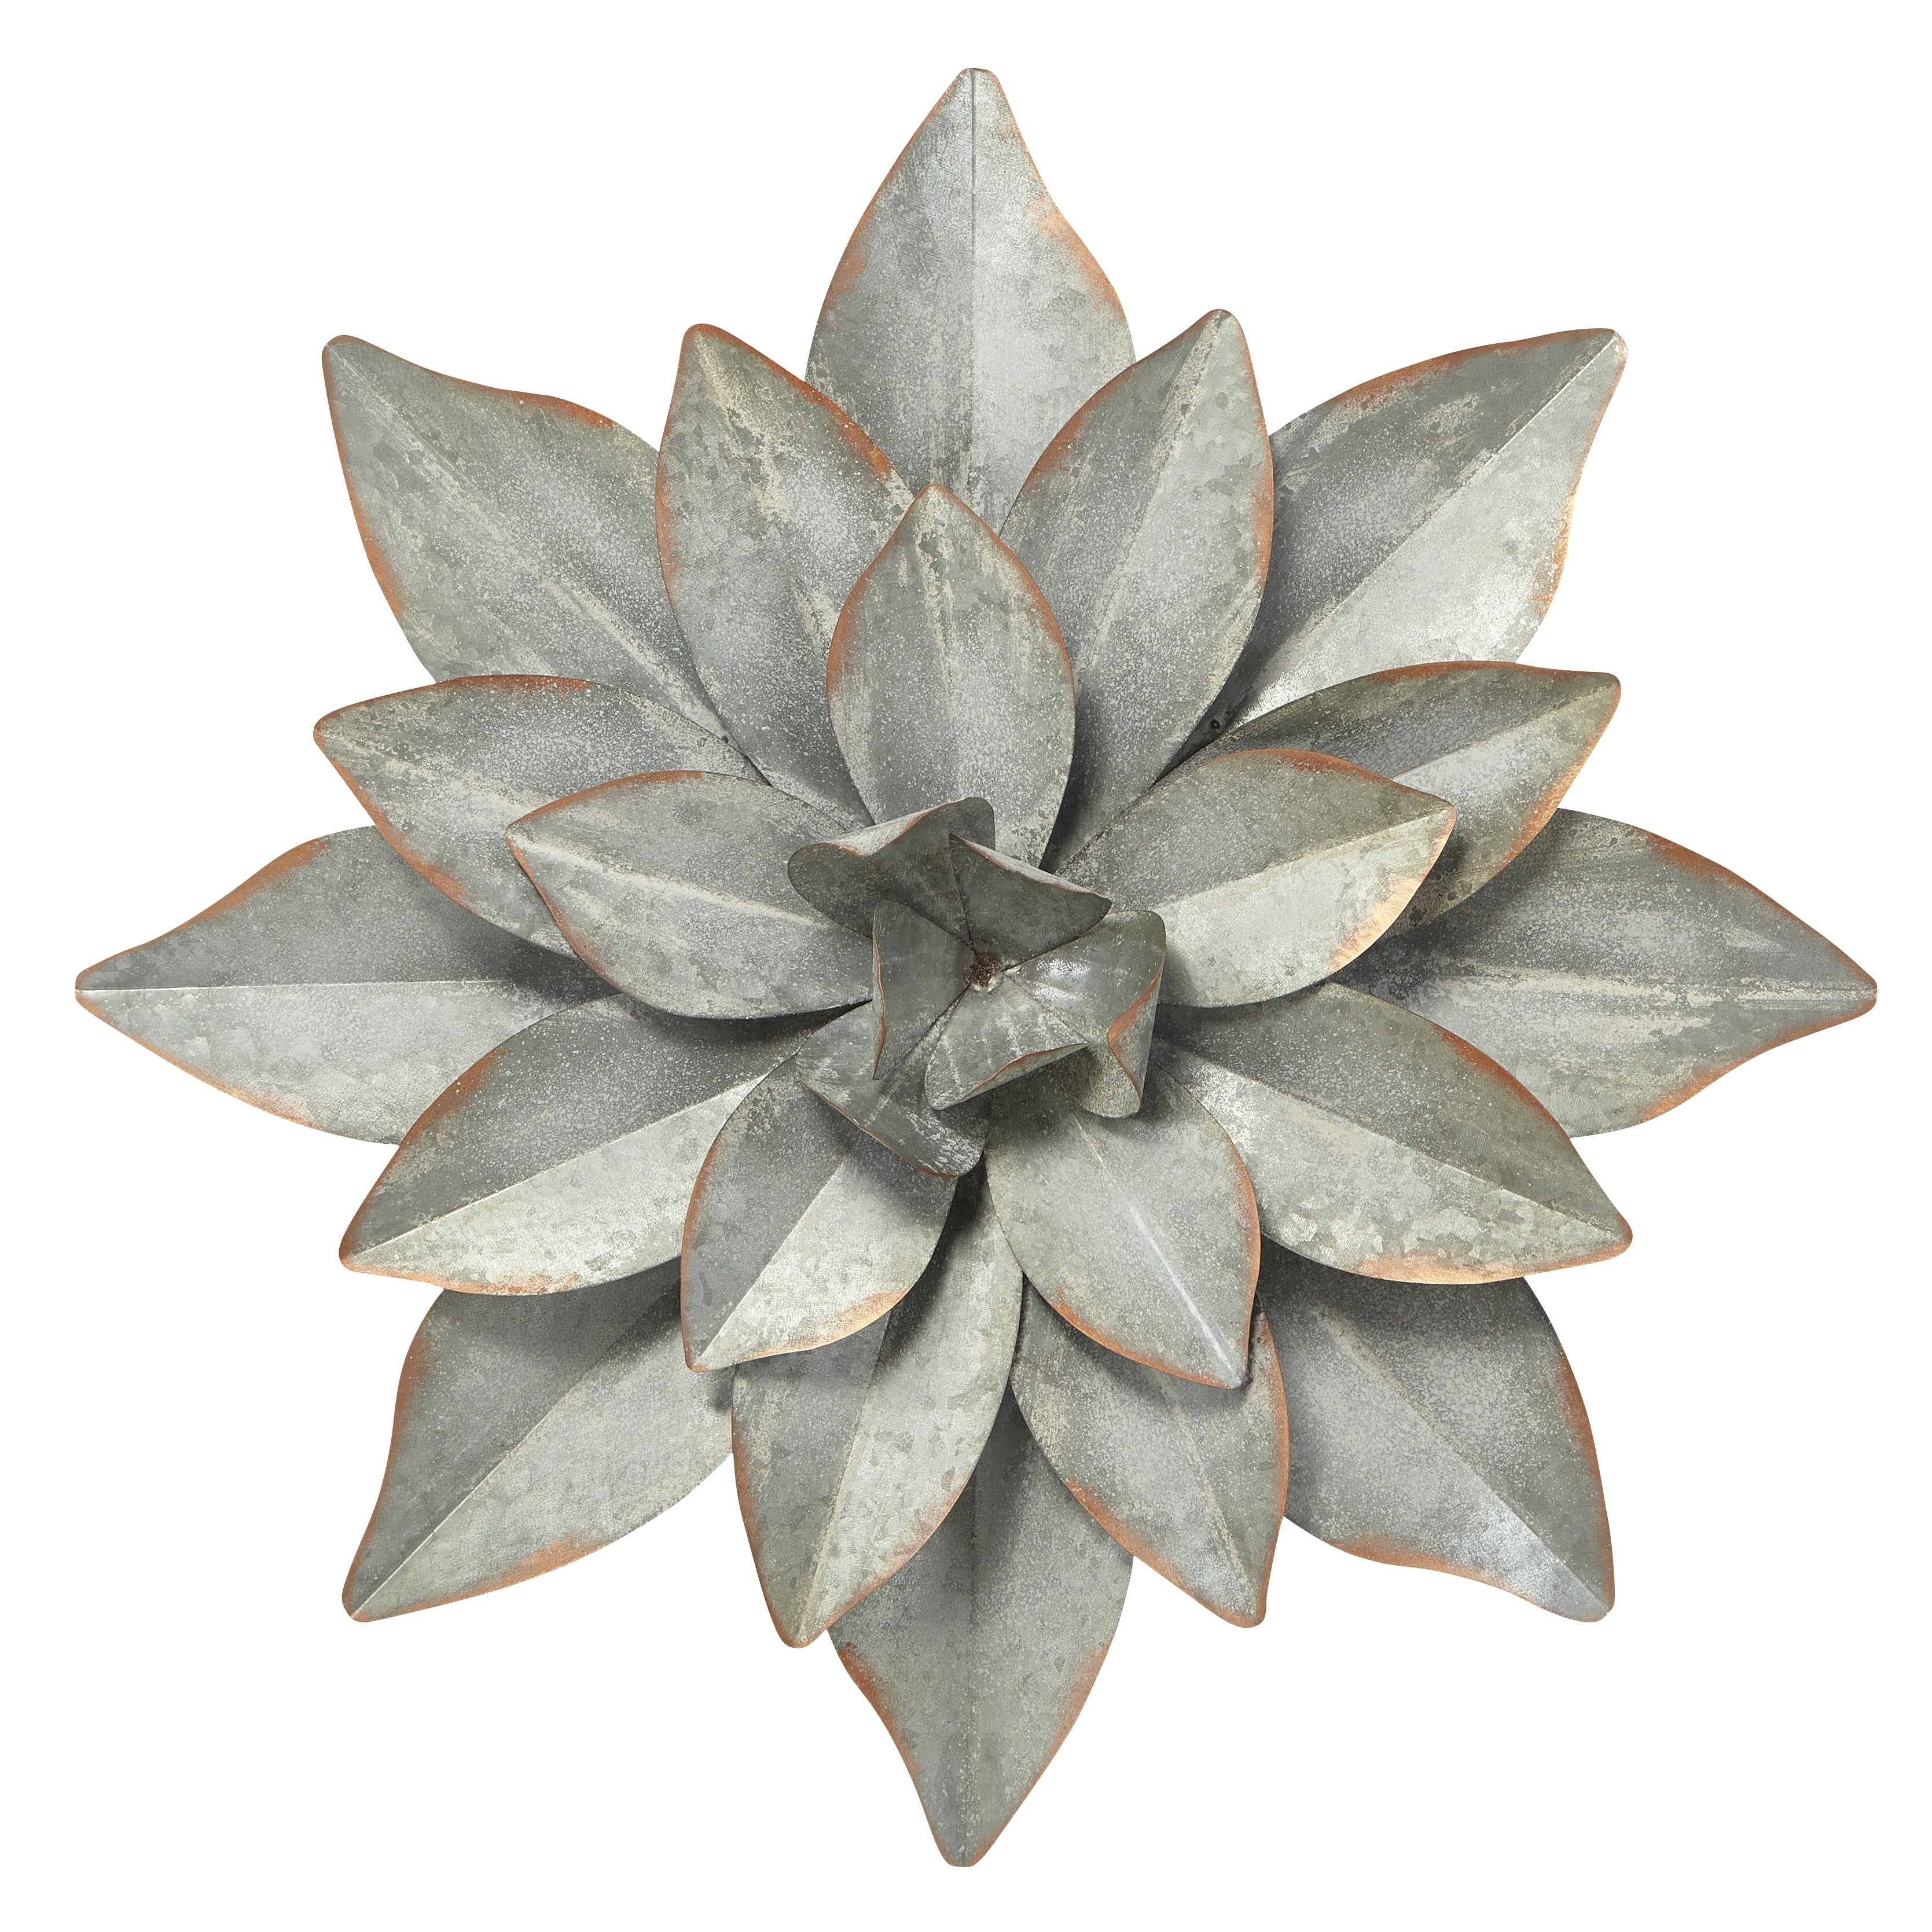 Flower Wall Decor Metal – Flowers Healthy With Regard To Raheem Flowers Metal Wall Decor By Alcott Hill (View 11 of 30)